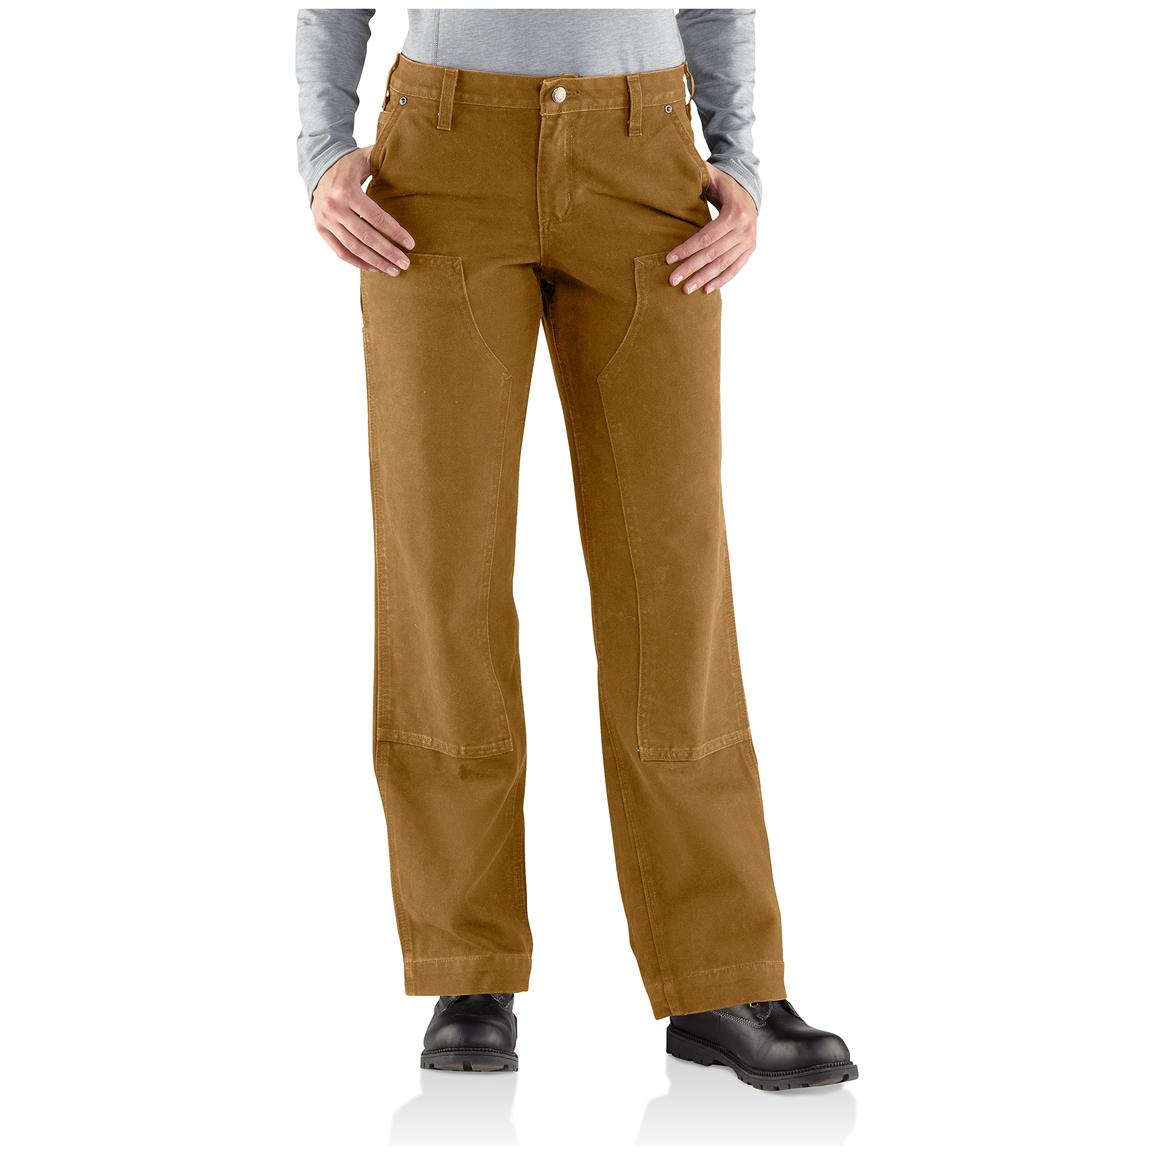 womens carhartt pants photo - 1